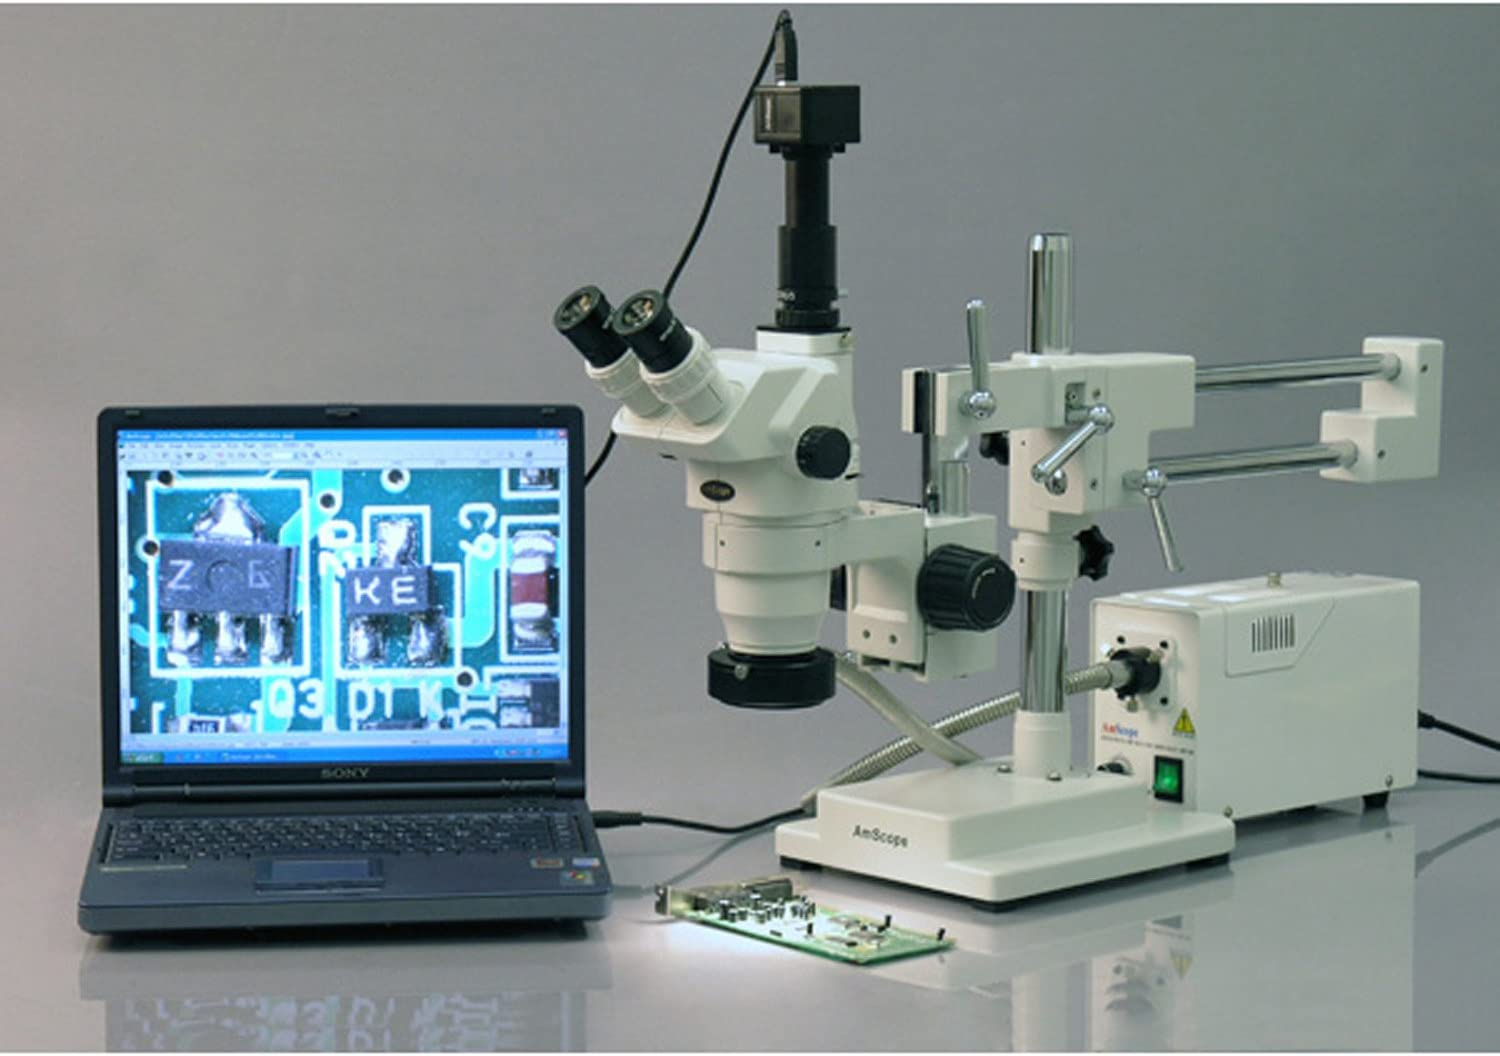 Includes 0.3x and 2.0x Barlow Lenses AmScope ZM-4TZ3 Professional Trinocular Stereo Zoom Microscope 0.67X-4.5X Zoom Objective 2X-90X Magnification Ambient Lighting Double-Arm Boom Stand EW10x Eyepieces